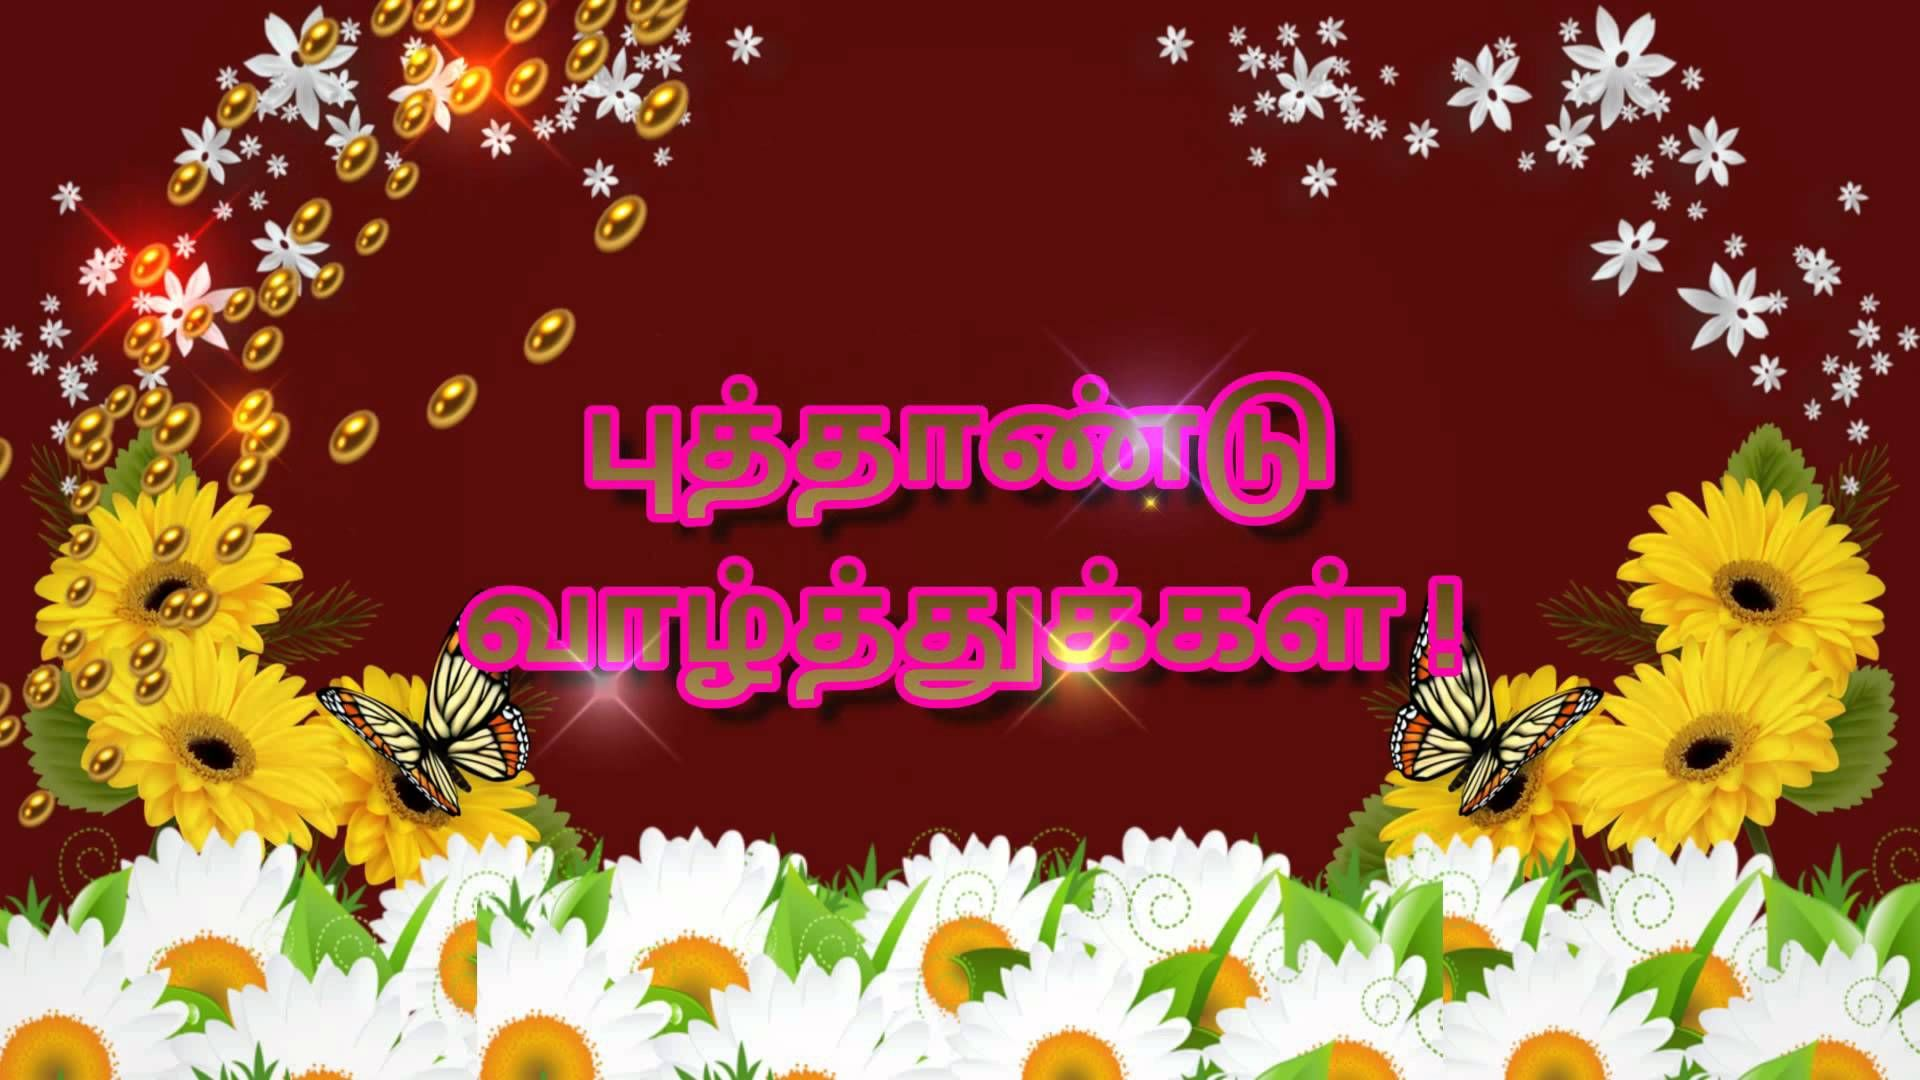 happy puthandu 2016 tamil new year wishes puthandu greetings puthandu